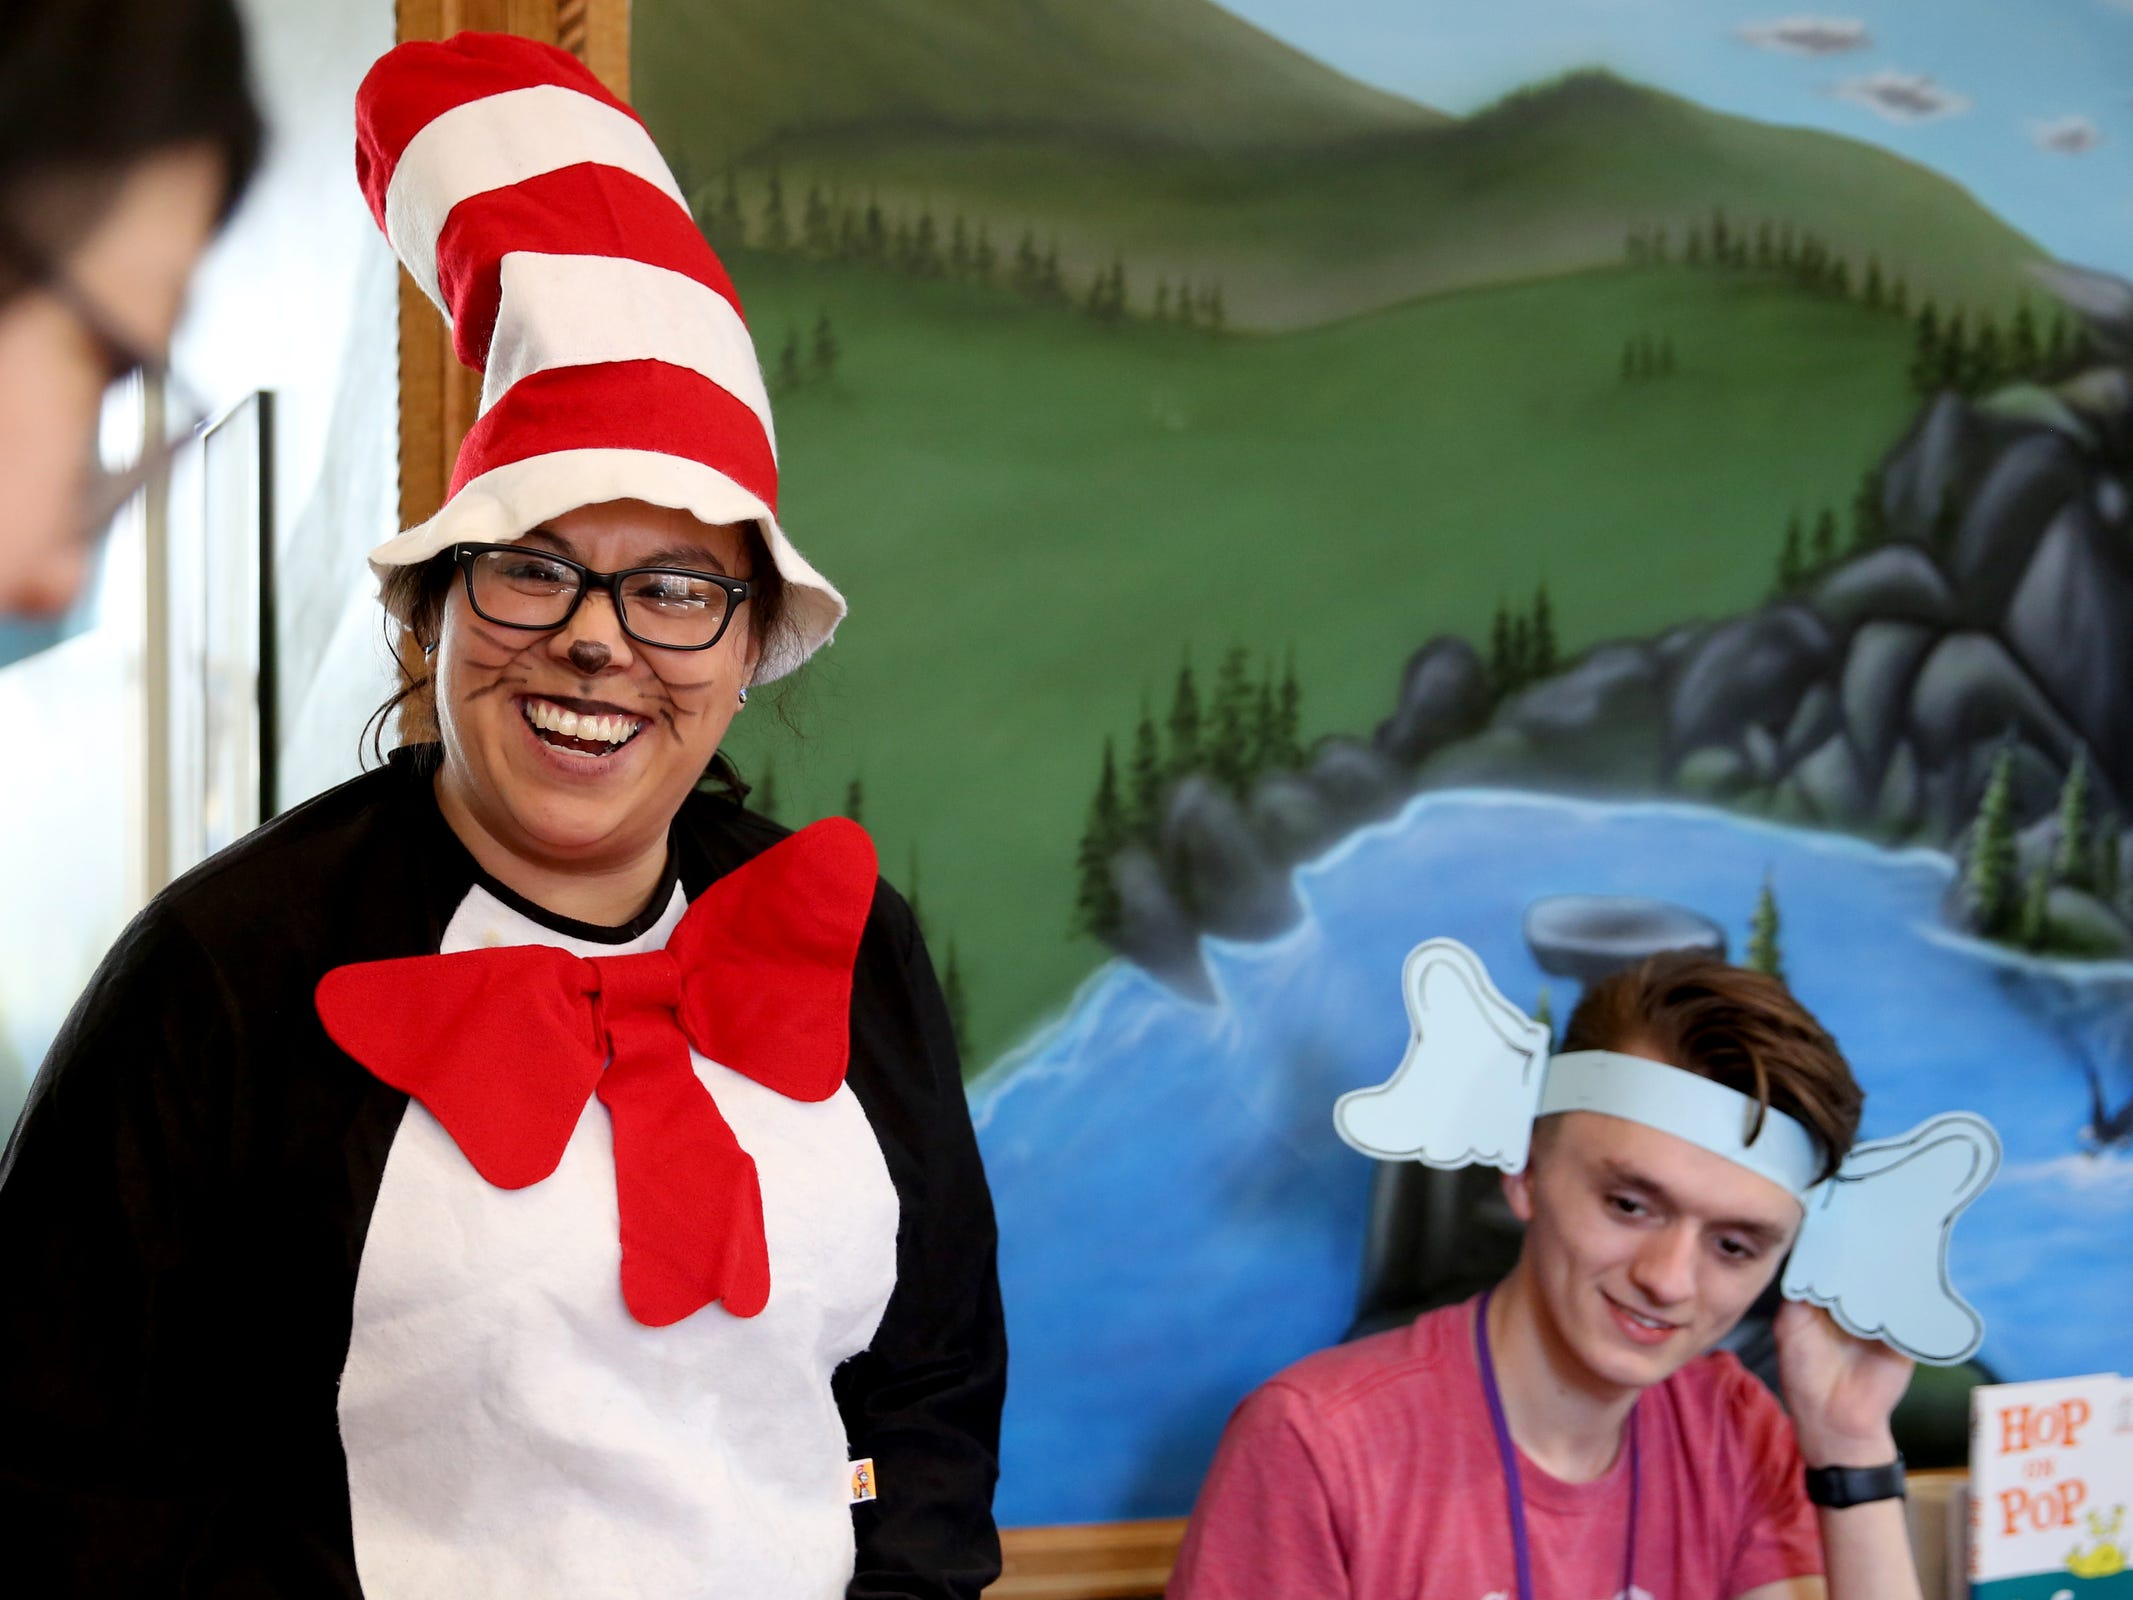 Patricia McNab, the community relations coordinator with Gilbert House Children's Museum, and Cody Cody Broughton, a visitor services associate, dress as Dr. Seuss characters the Cat in the Hat and Horton, respectively, as part of a National Read Across America Day activity in honor of Dr. Seuss' birthday at Gilbert House Children's Museum in Salem  on Friday, March 1, 2019.